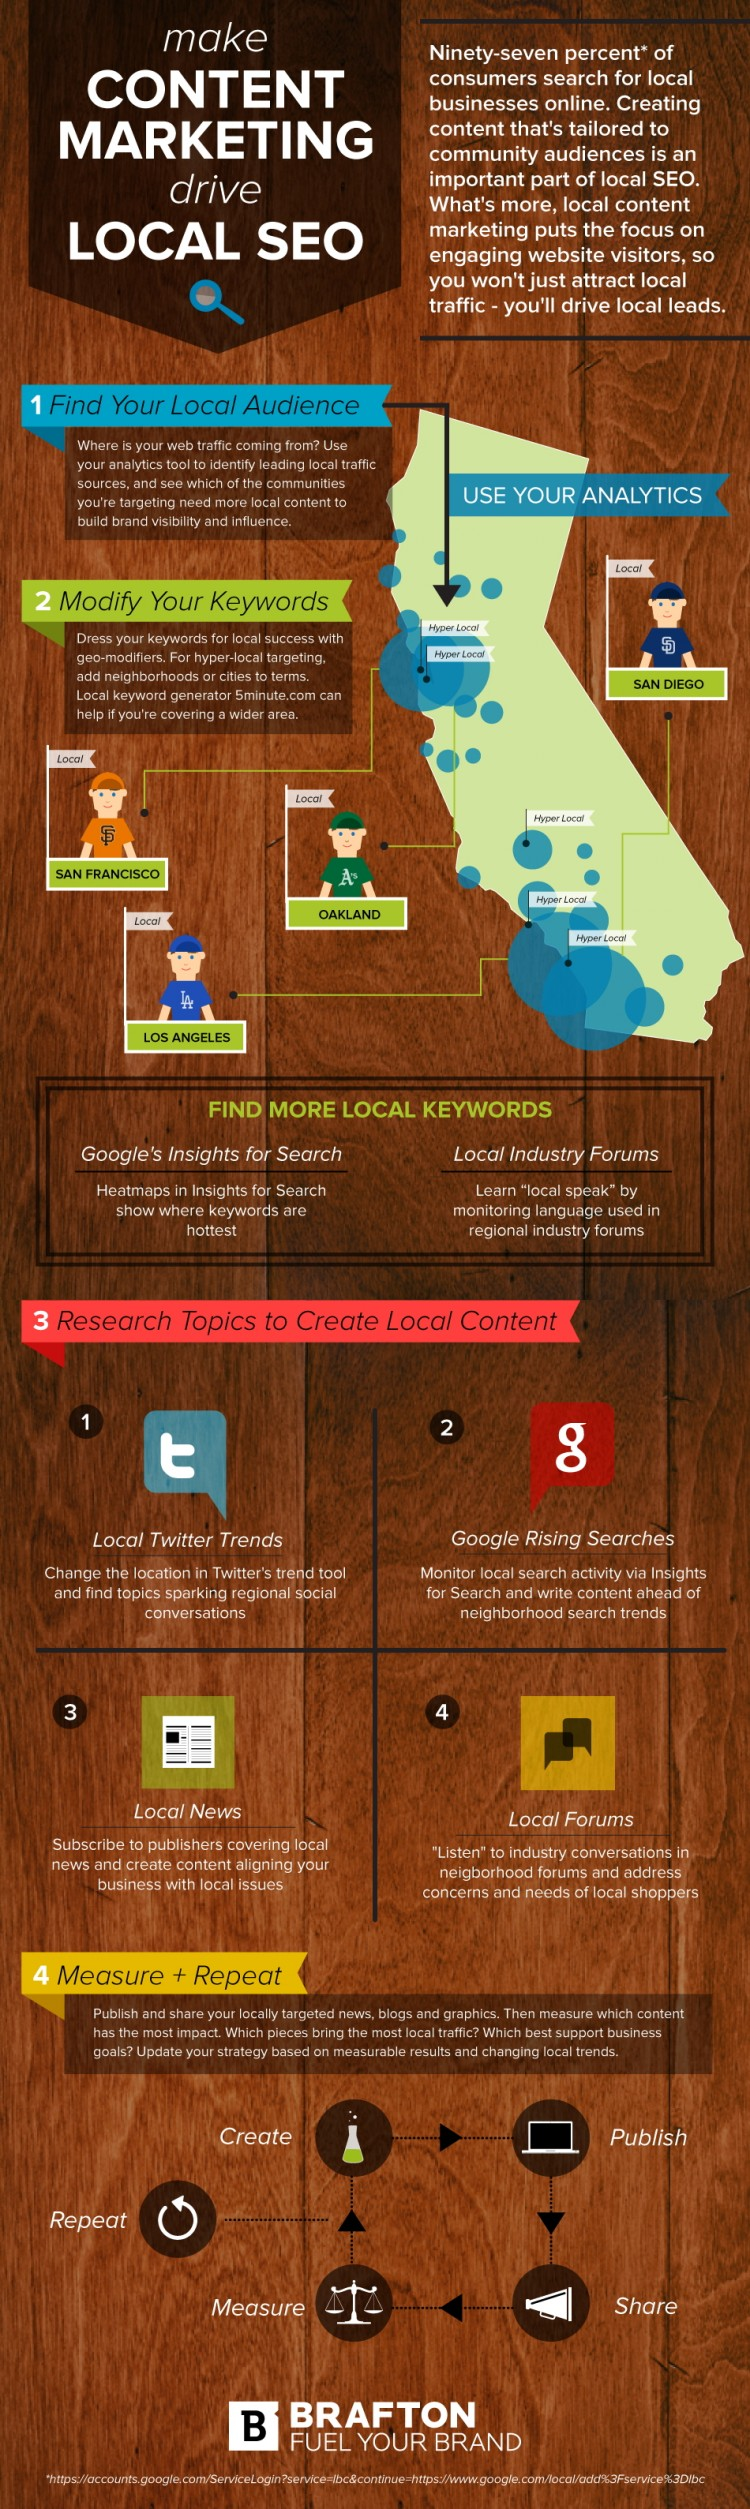 Strategic content marketing can power local SEO and engage community audiences, build visibility, thought leadership and local leads.